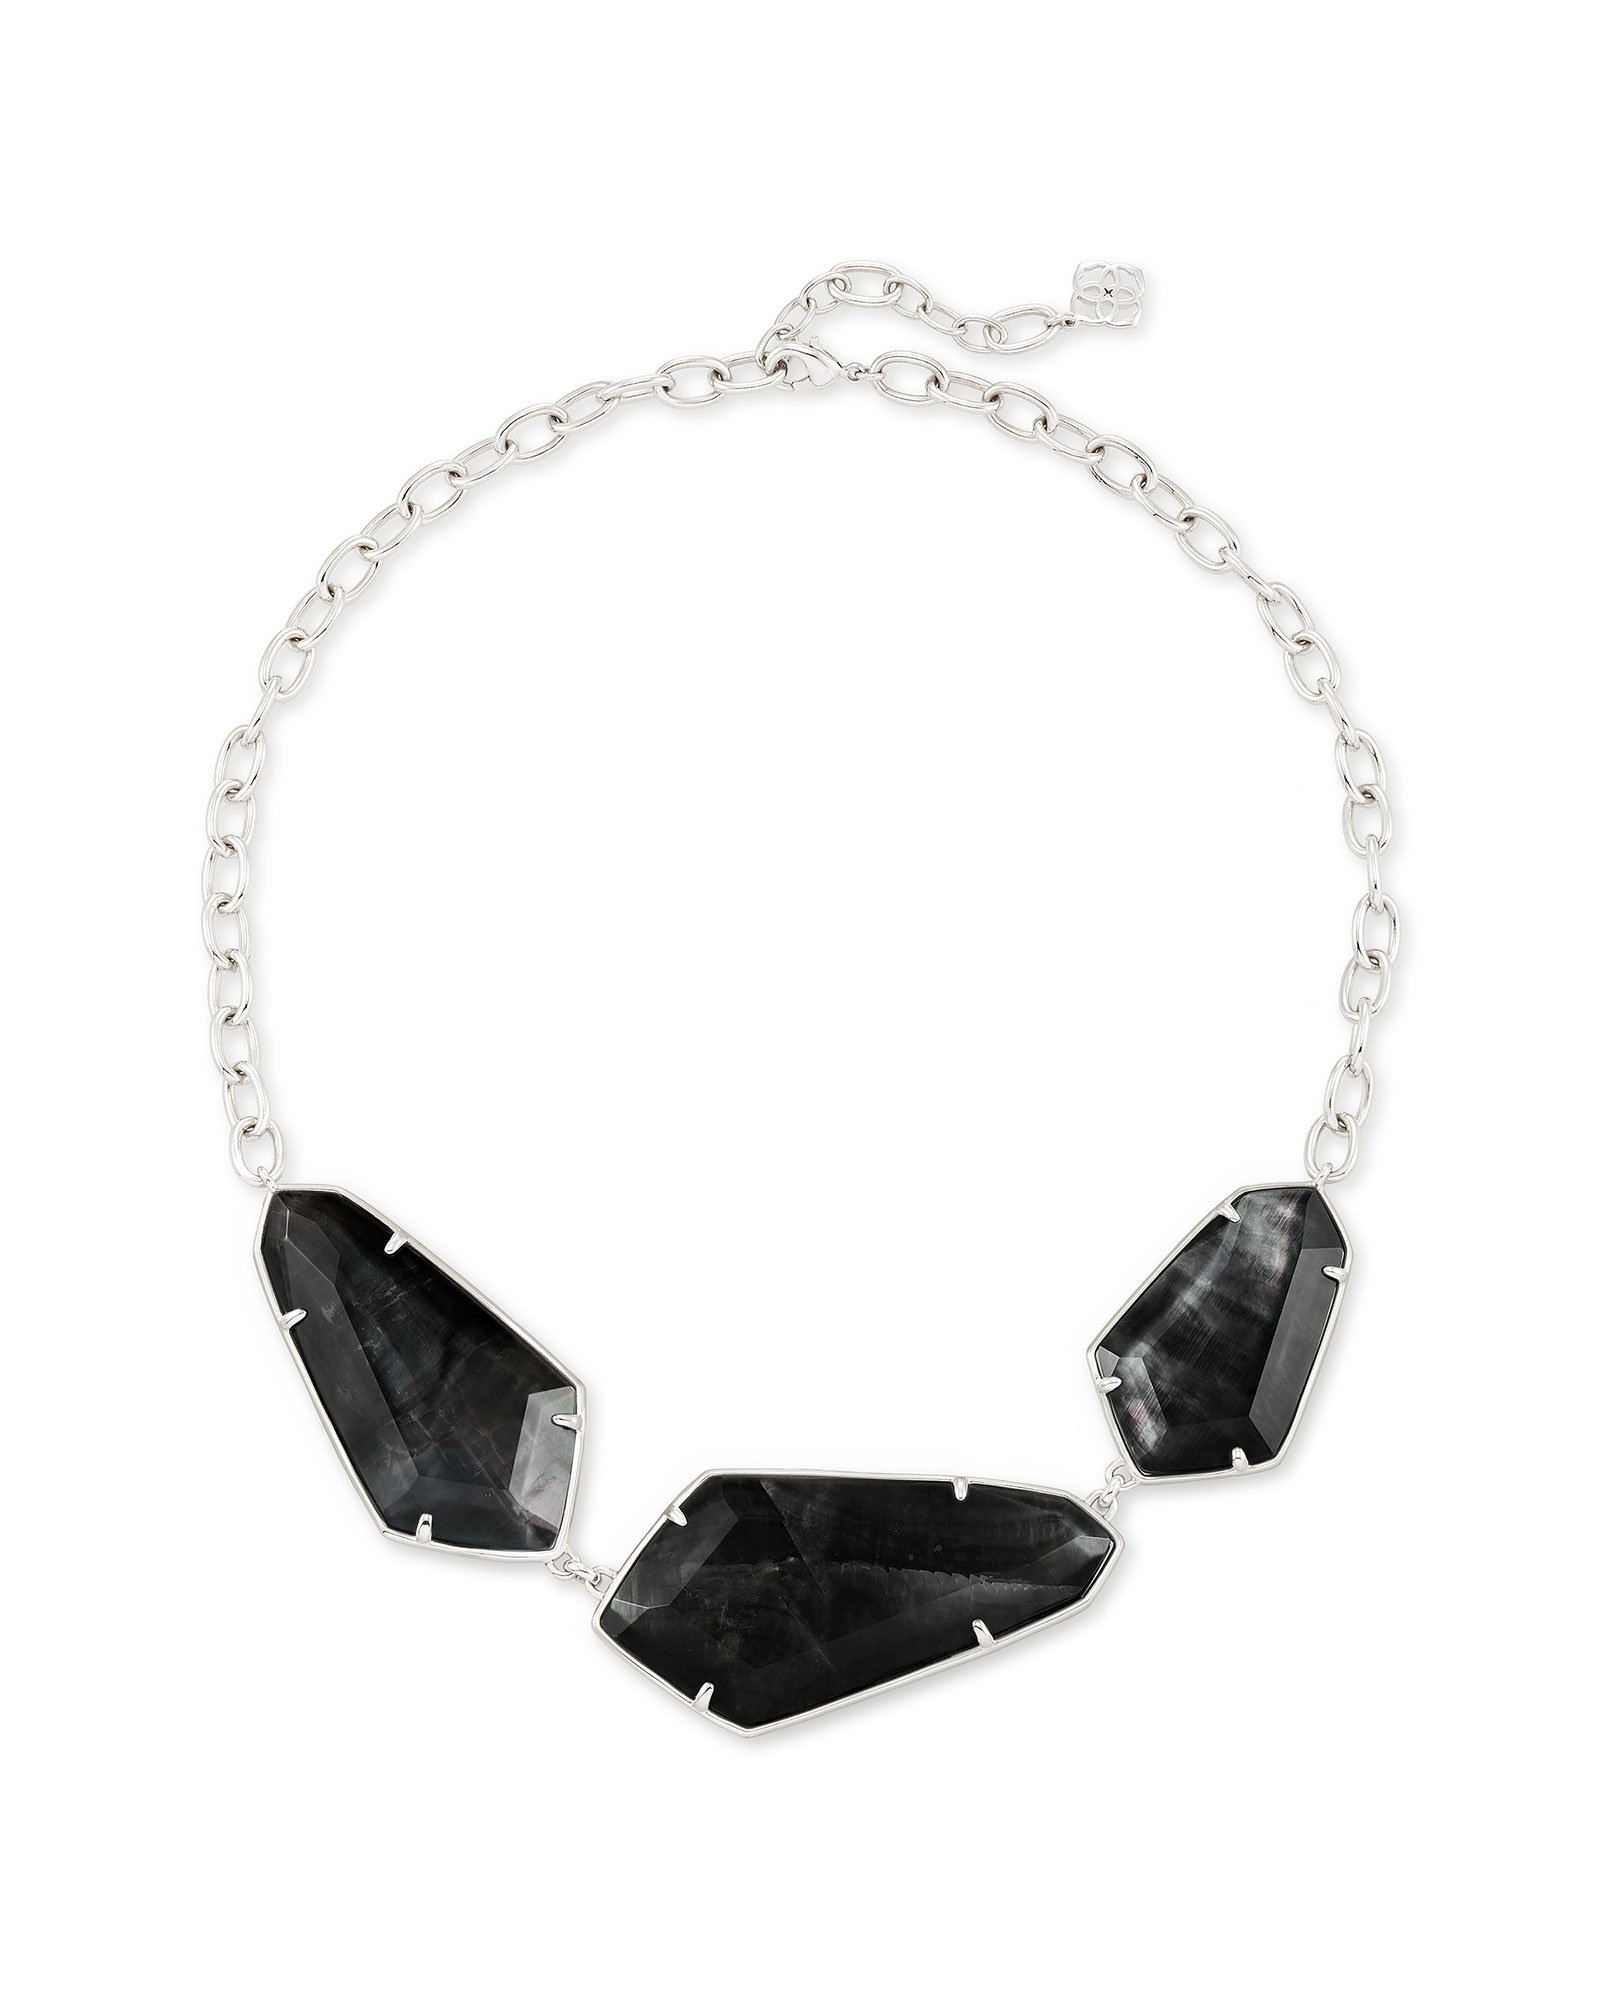 Violet Silver Statement Necklace in Black Cat's Eye